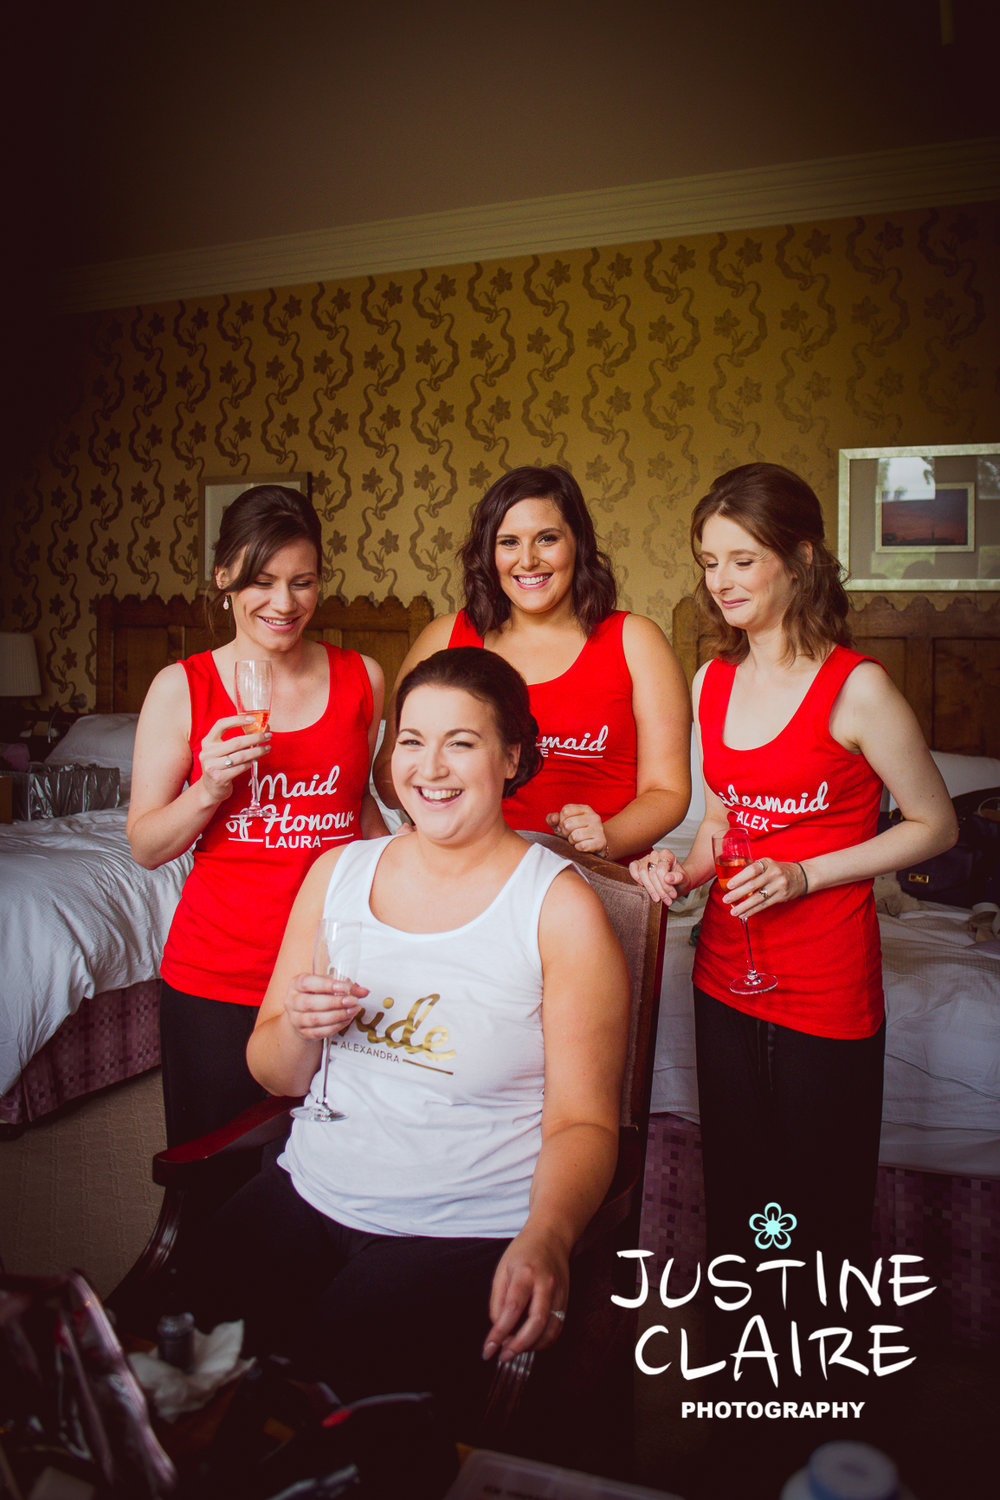 South Lodge Hotel  Wedding Photographers & photography Engagement Shoot6-2.jpg